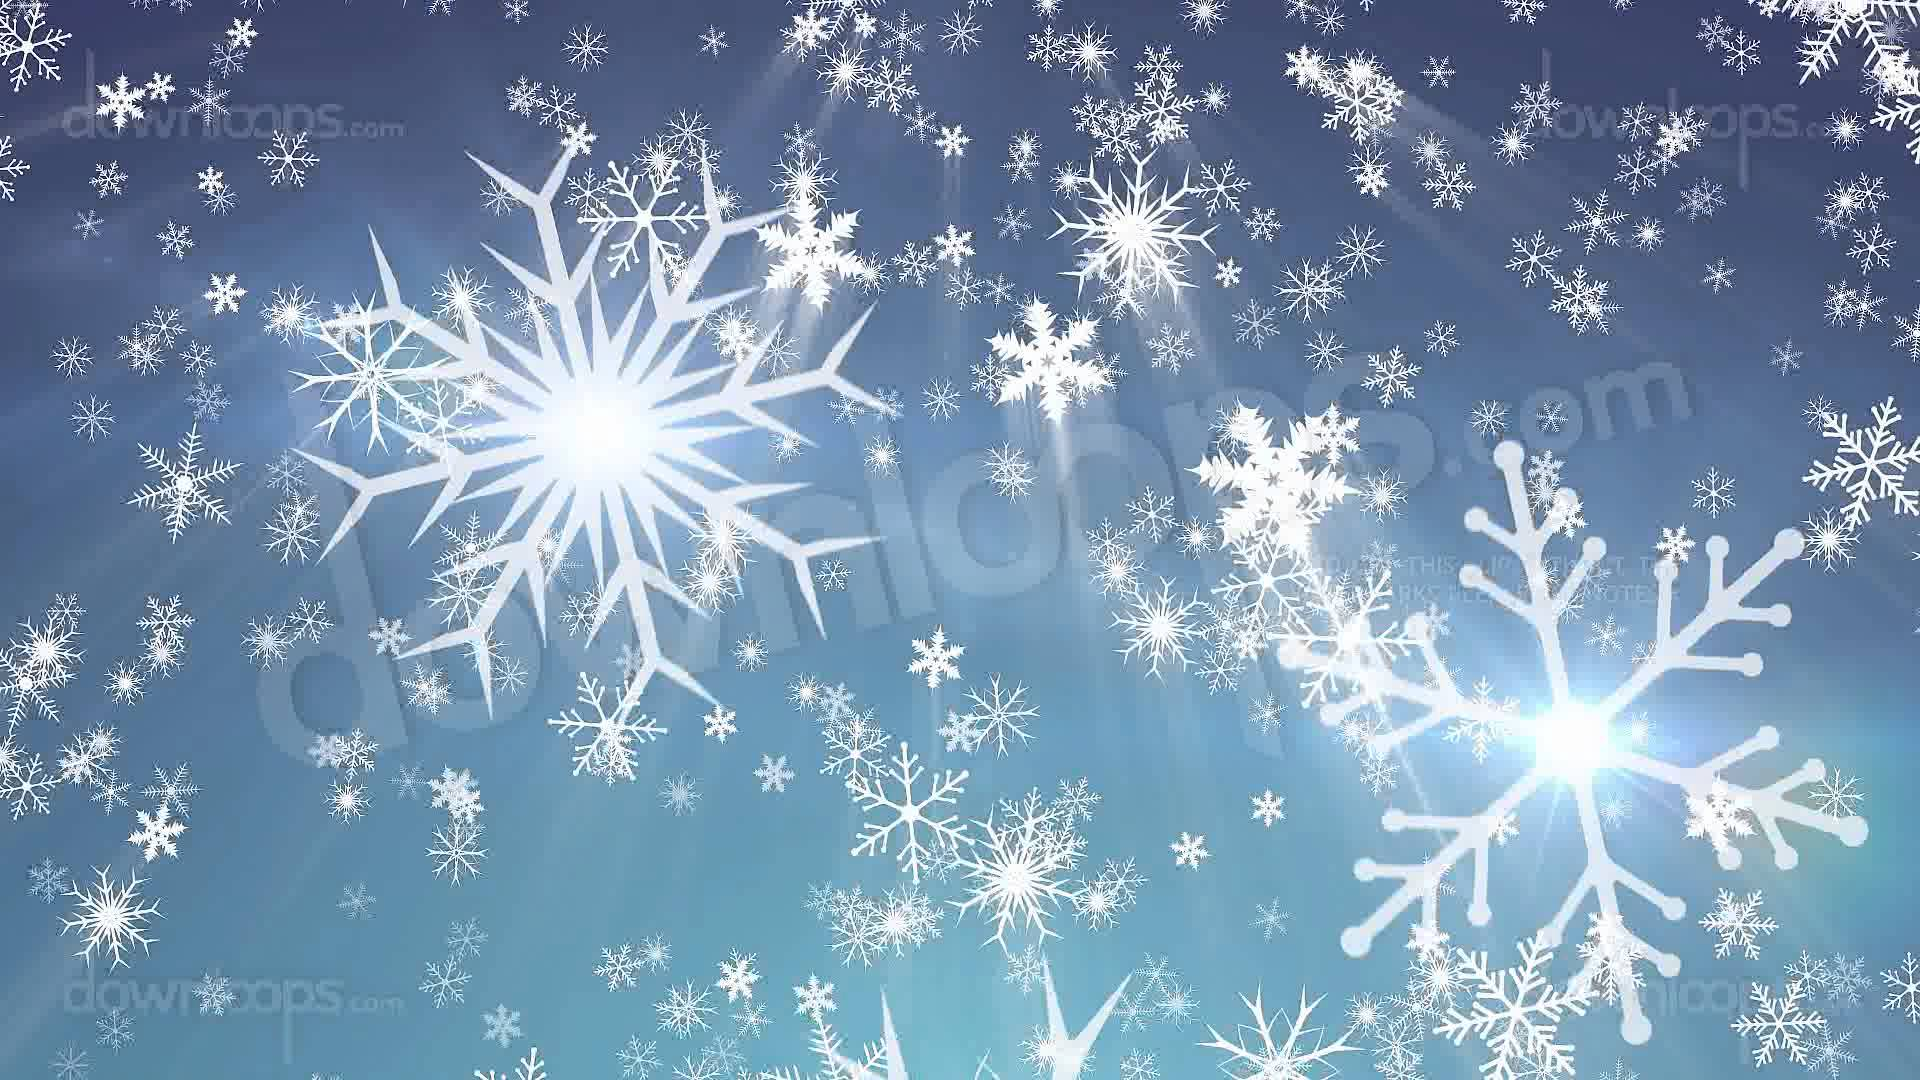 50+] Christmas Wallpaper Moving Snow Falling on WallpaperSafari.